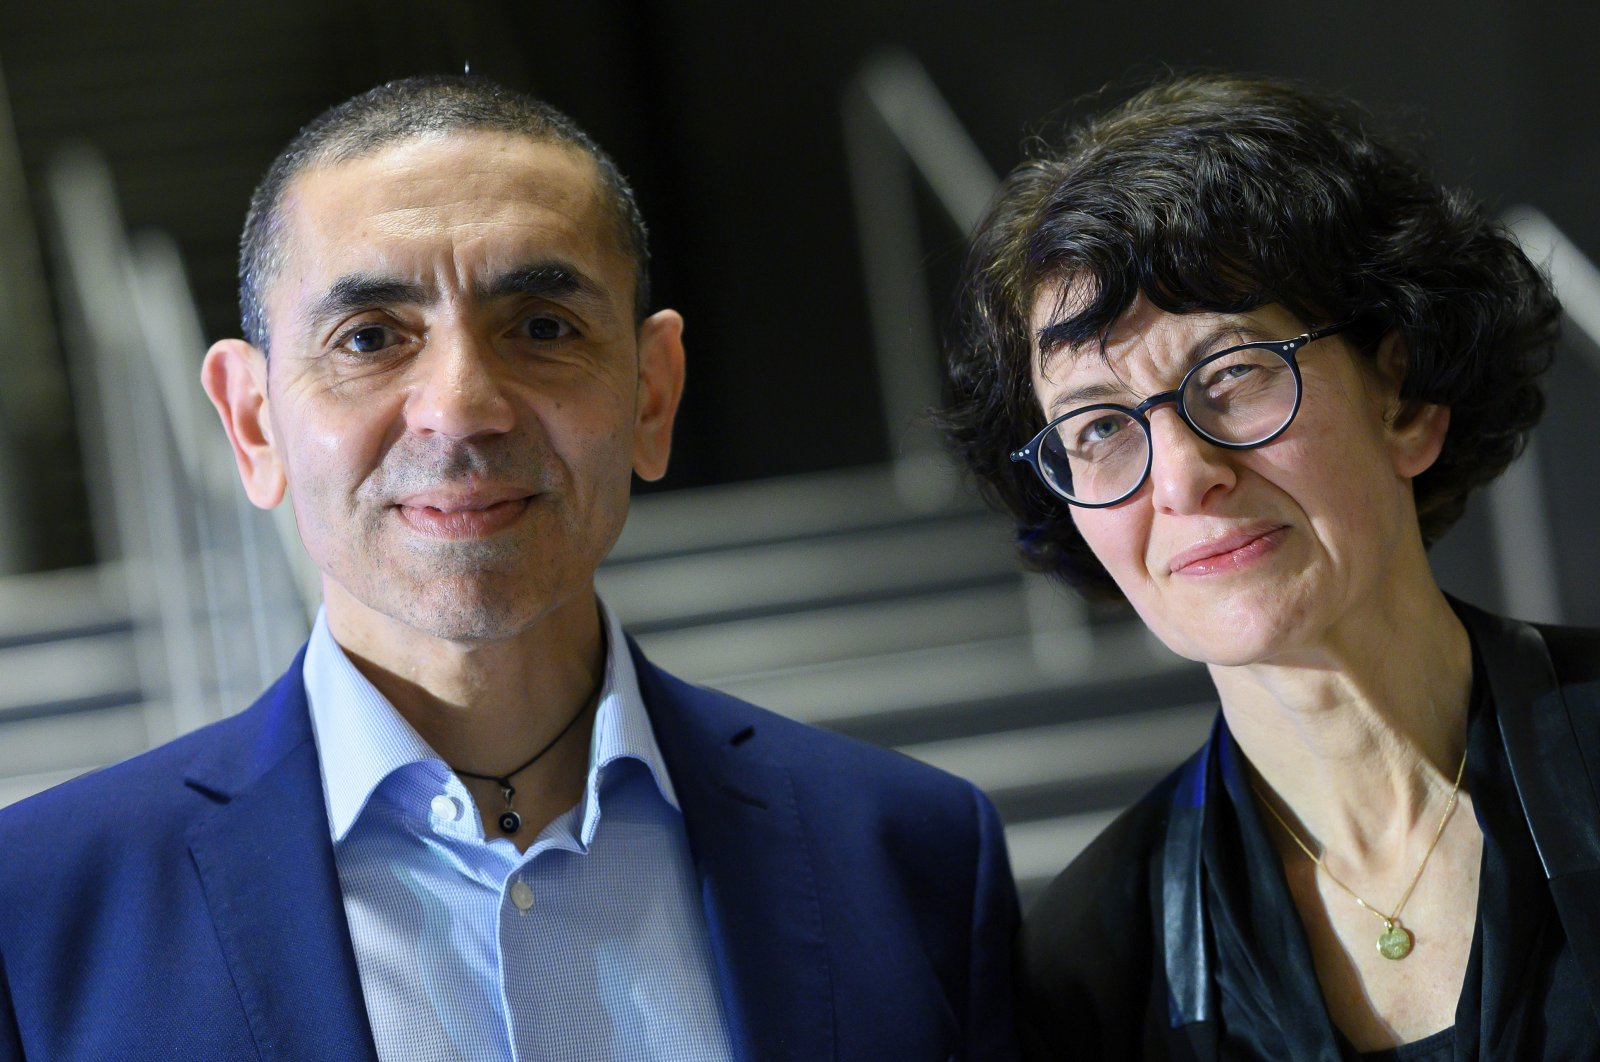 Uğur Şahin (L) and Özlem Türeci pose for a photo at an award ceremony, in Berlin, Germany, March 18, 2021. (AP PHOTO)